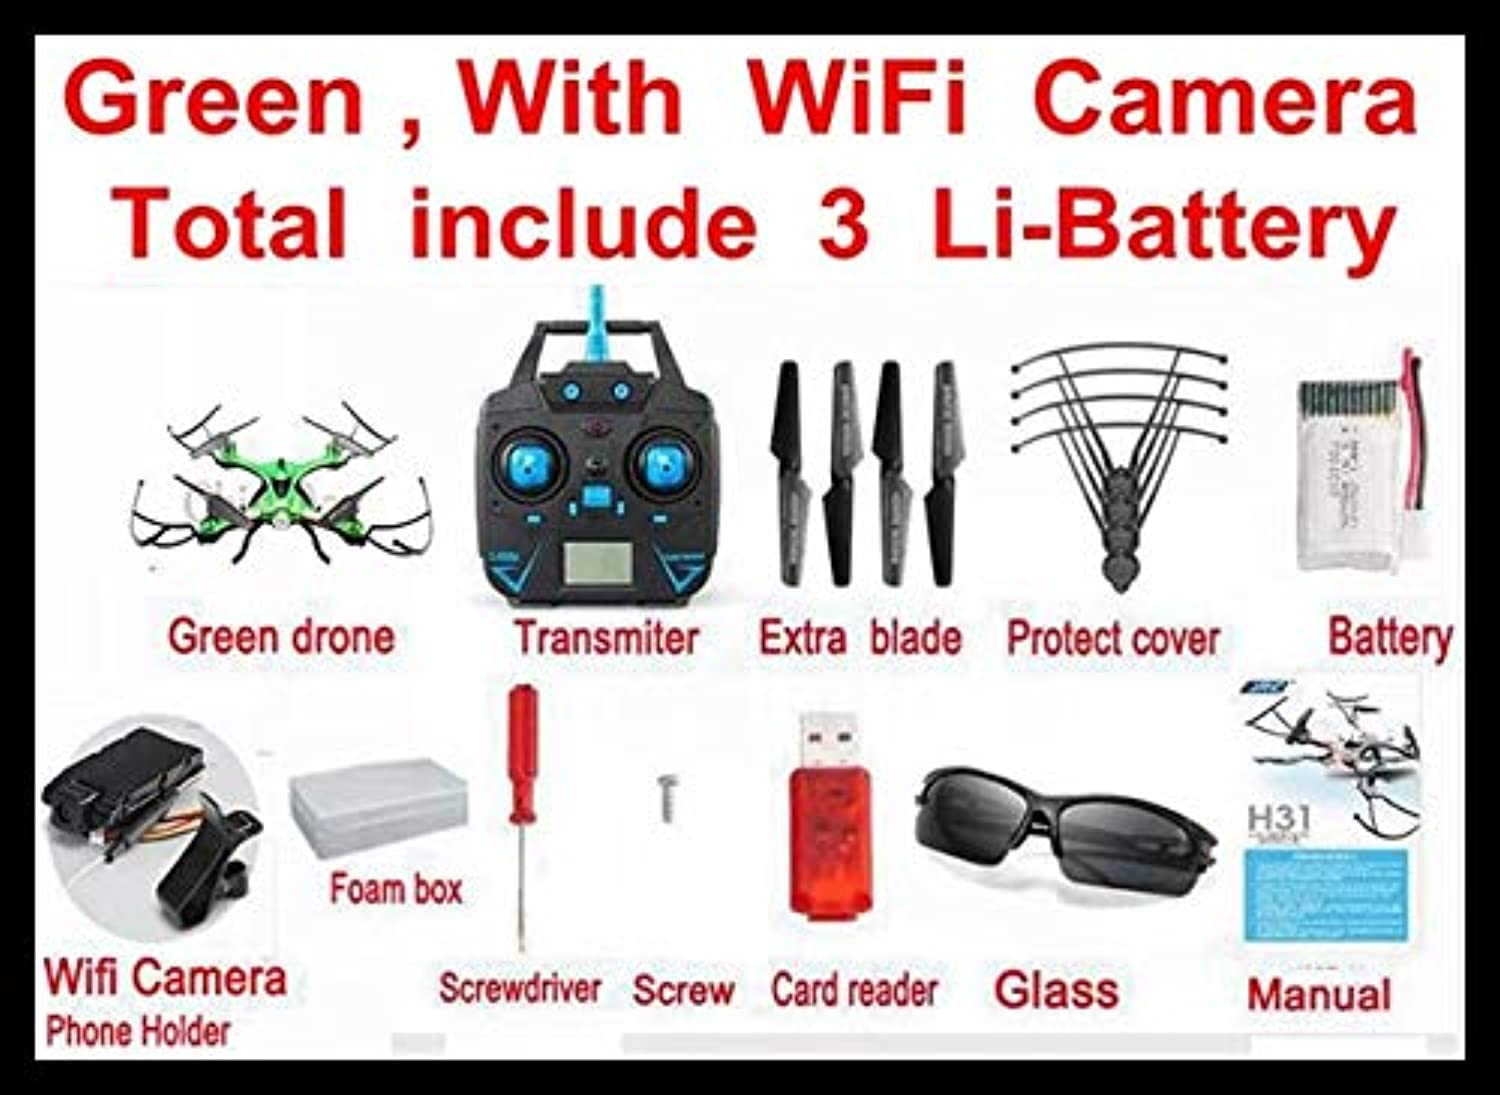 Generic Increase Price Next Month JJRC H31 Waterproof 2.4g RC Drone Helicopter Quadcopter with WiFi HD Camera V syma x5sw x5uw Green H31 WiFi 3B